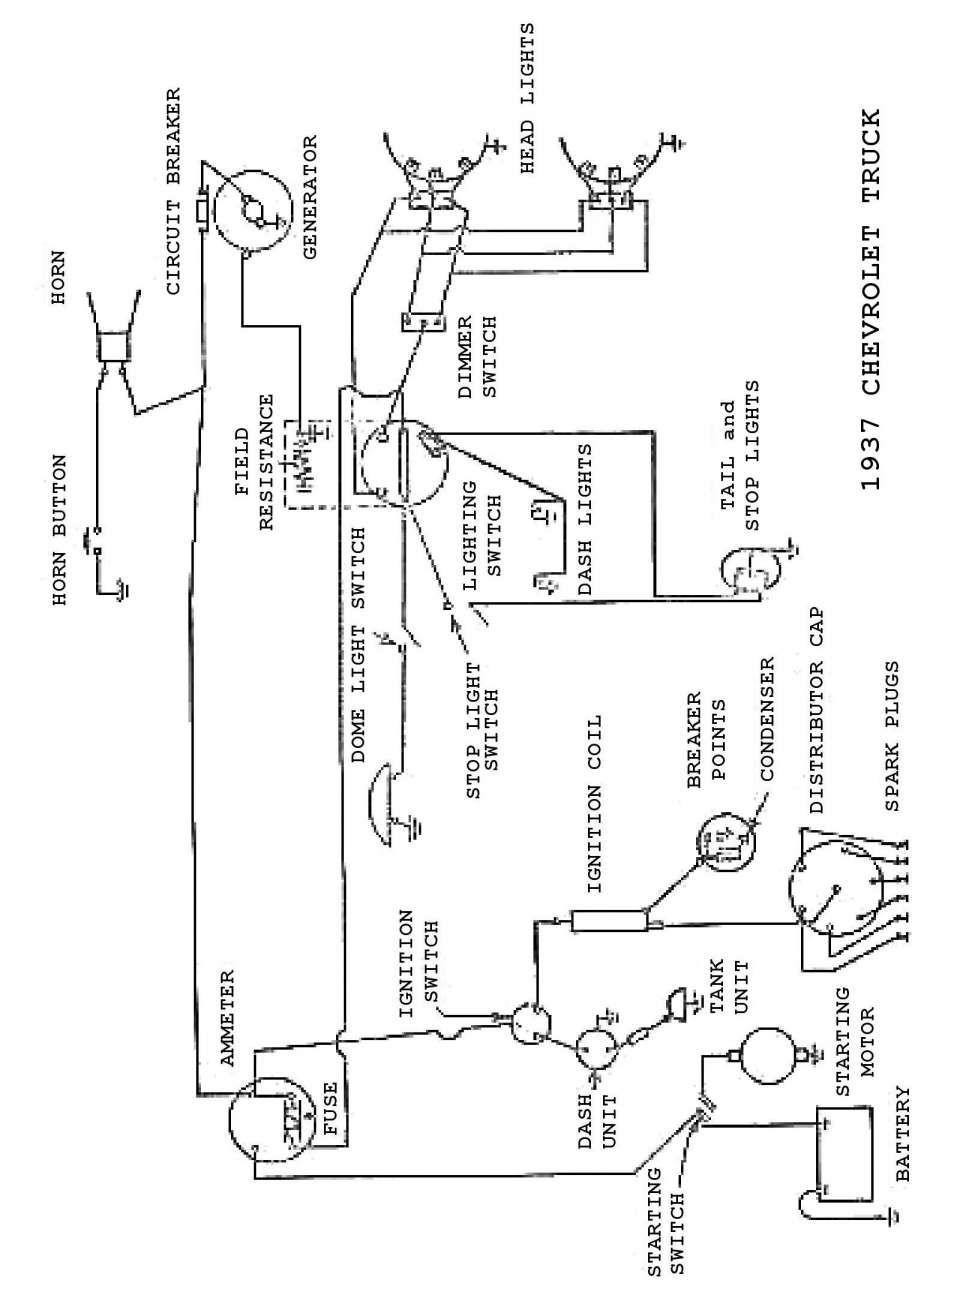 1998 Chevrolet Truck Wiring Diagram And Chevy Wiring Diagrams